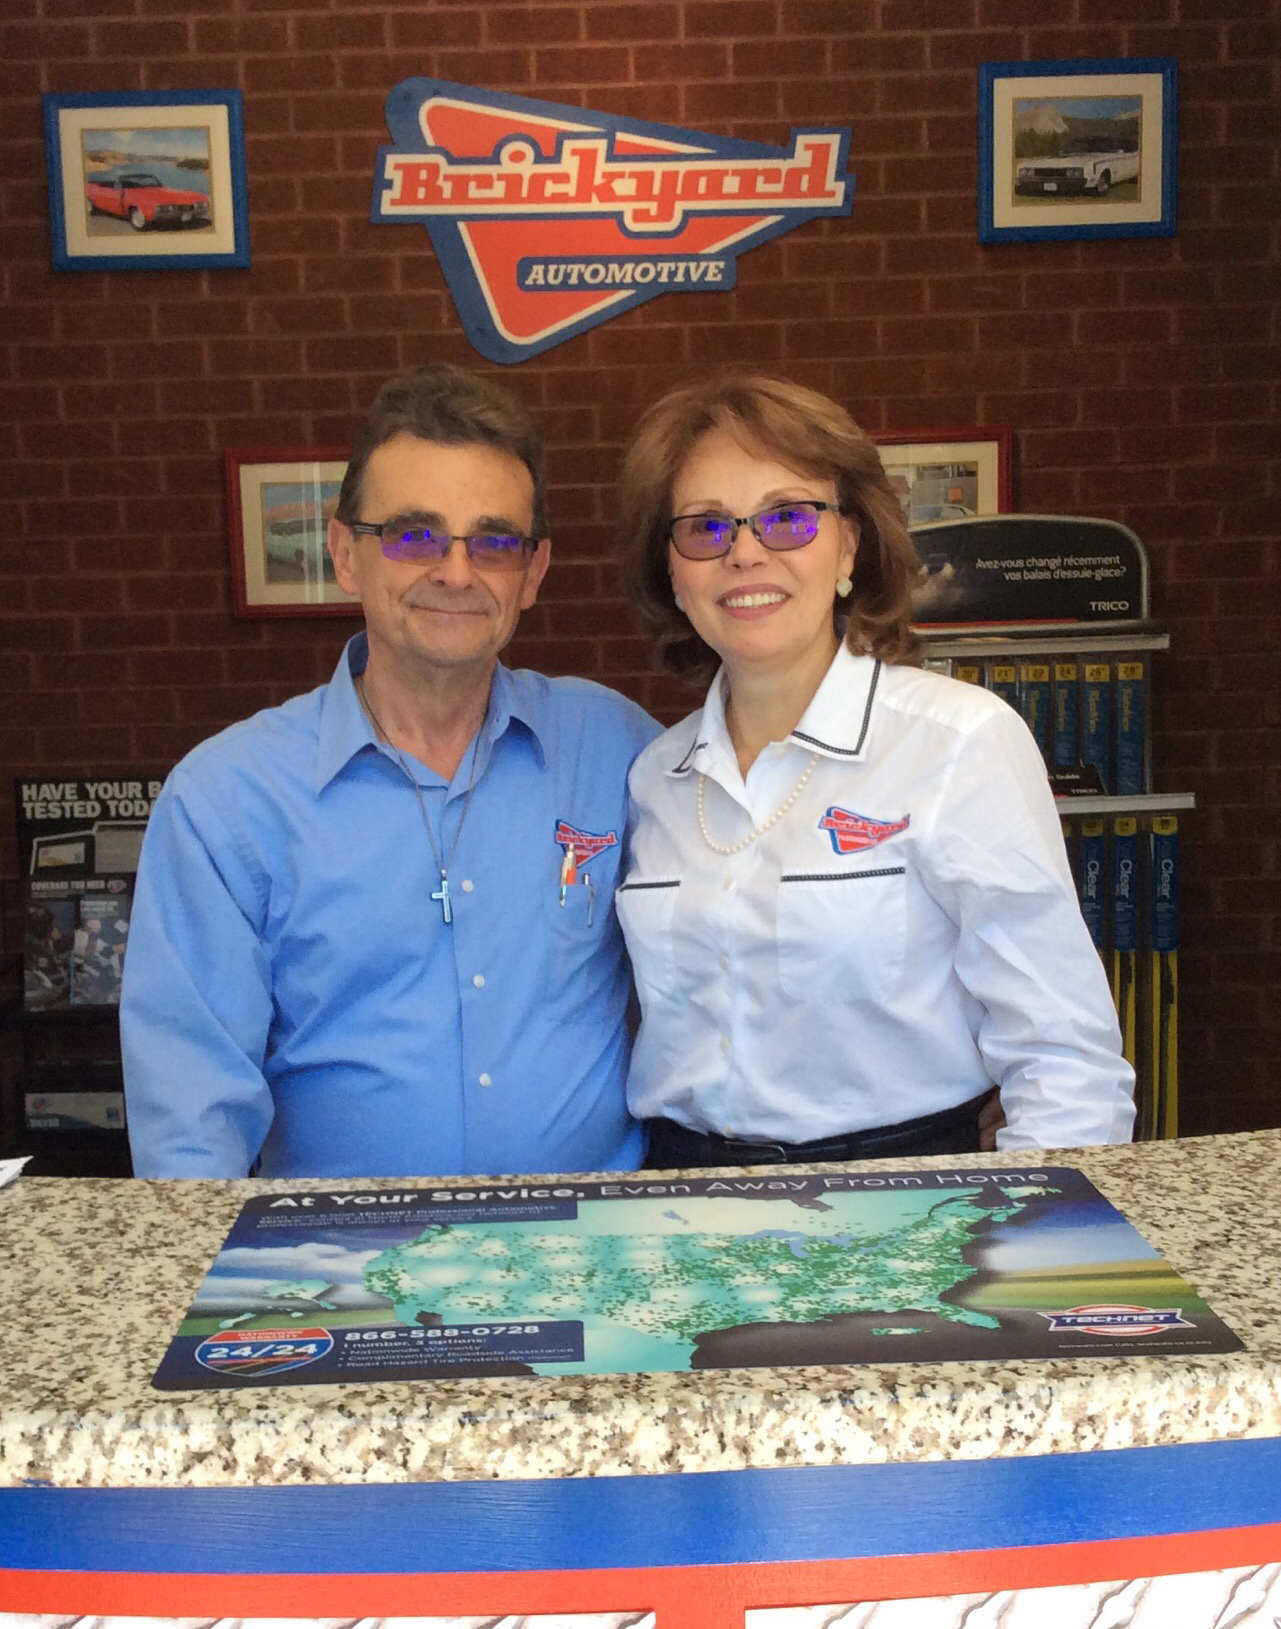 Auto Repair, Owners Who Care